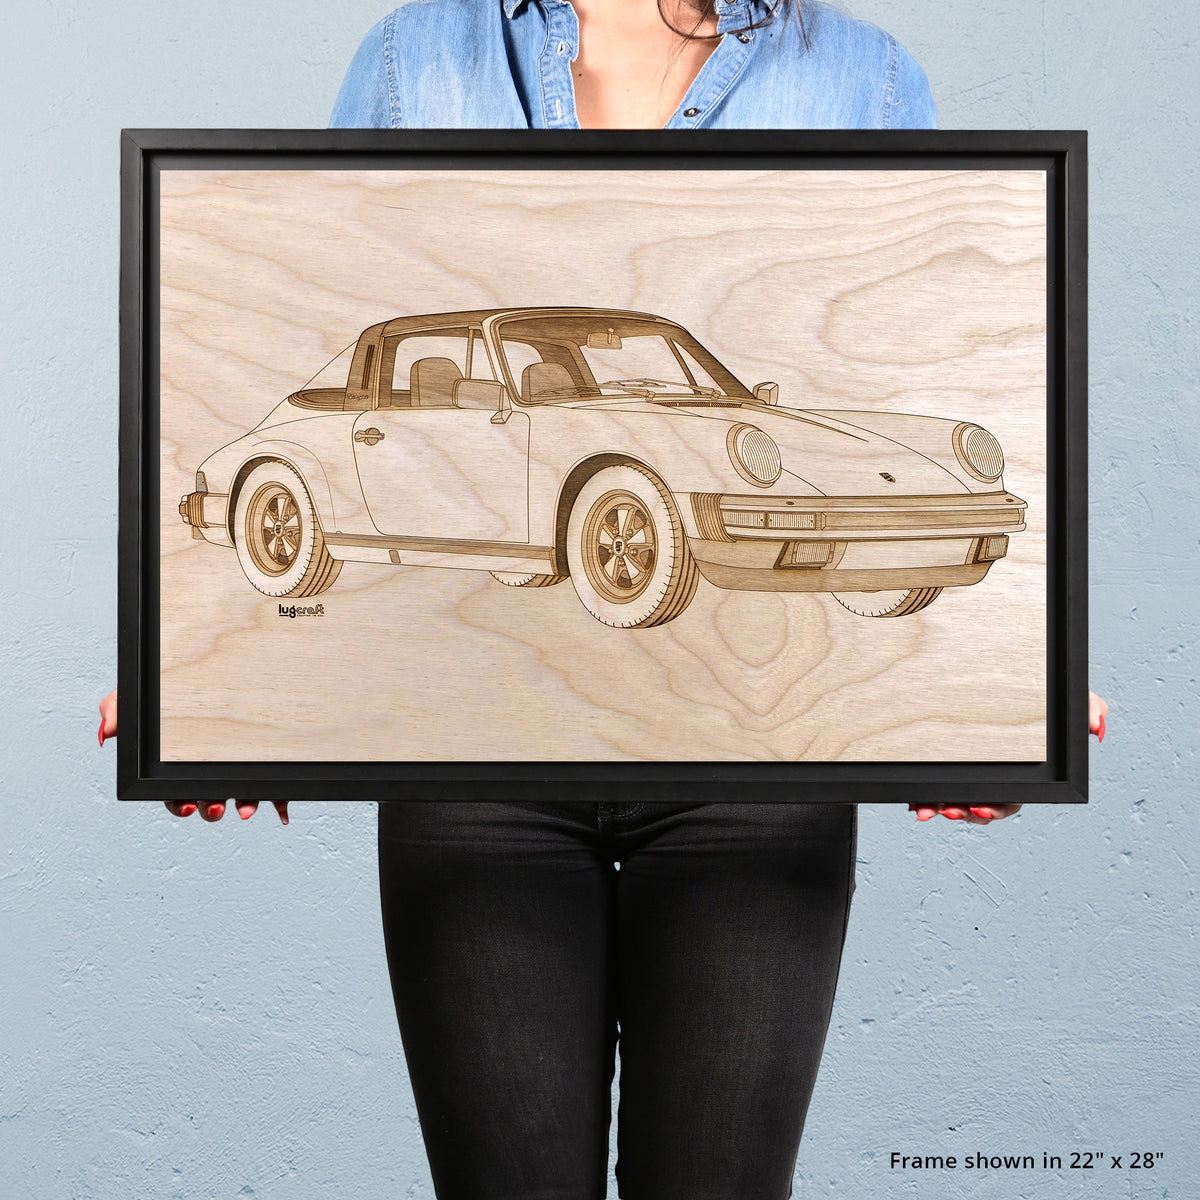 Porsche 911 Targa 1985 Framed Wood Engraved Artwork